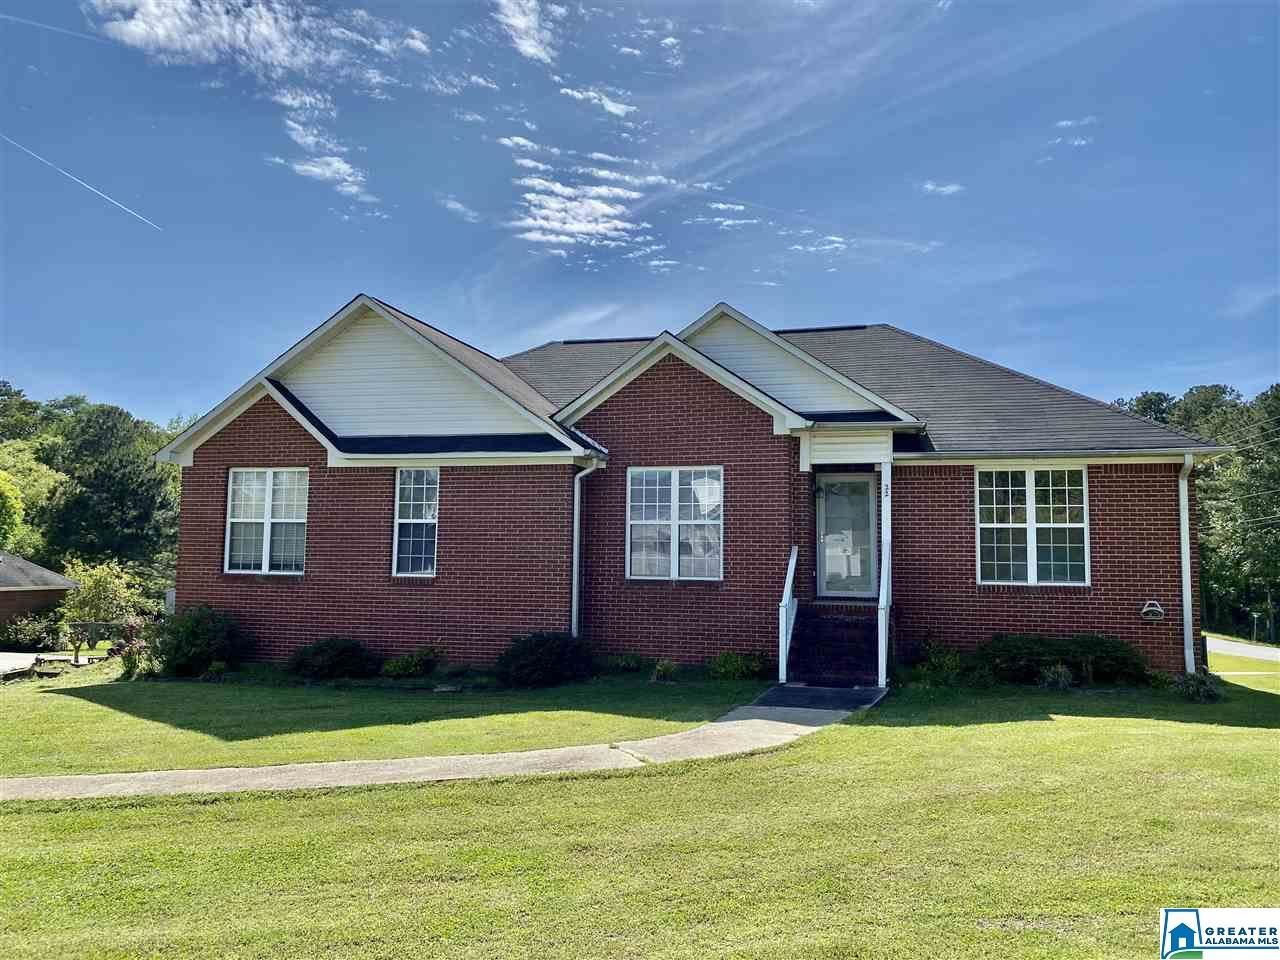 22 TWIN OAKS DR, Pell City, AL 35128 - MLS#: 868123